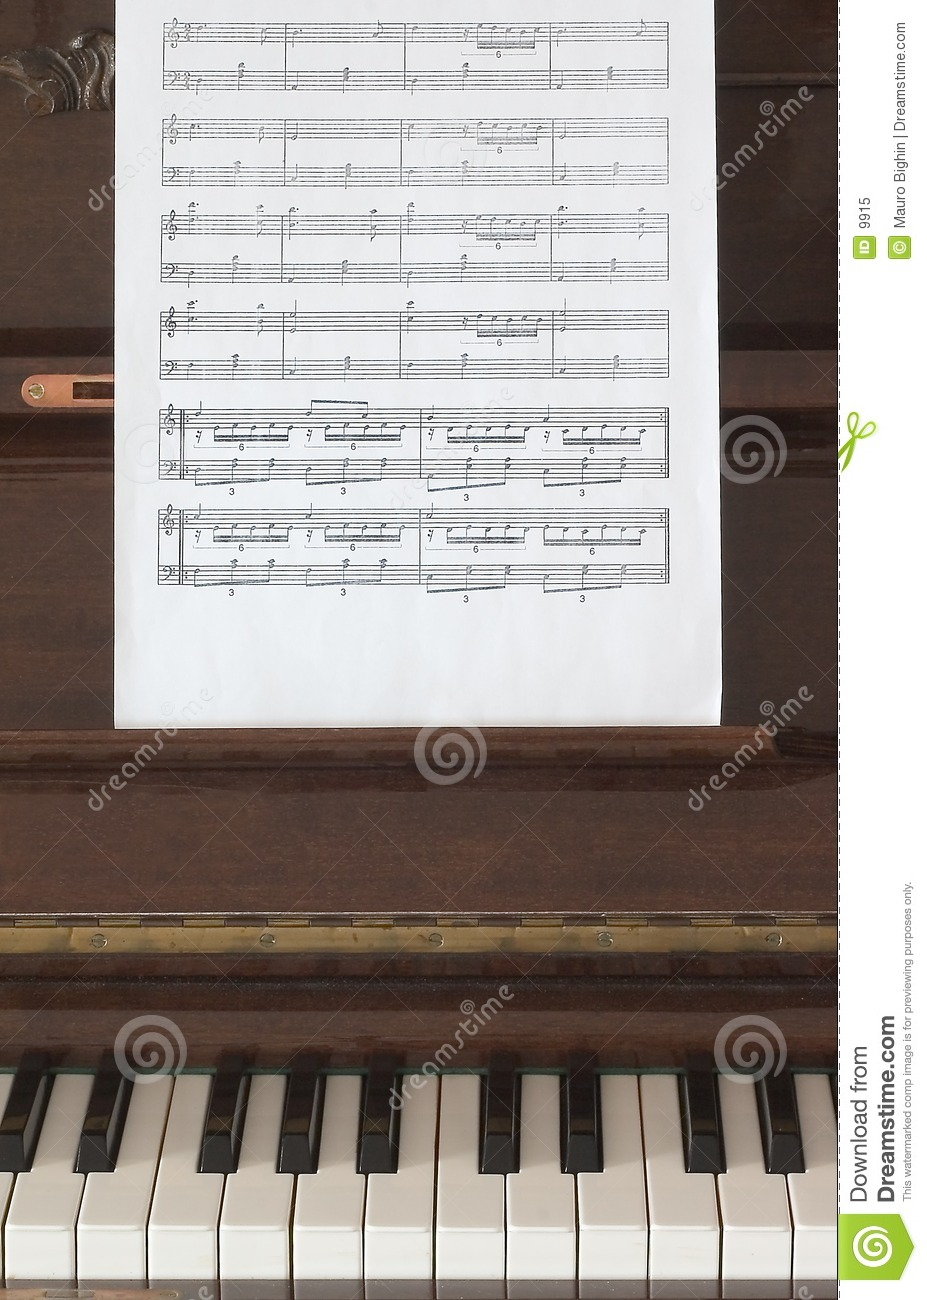 Musical score and piano